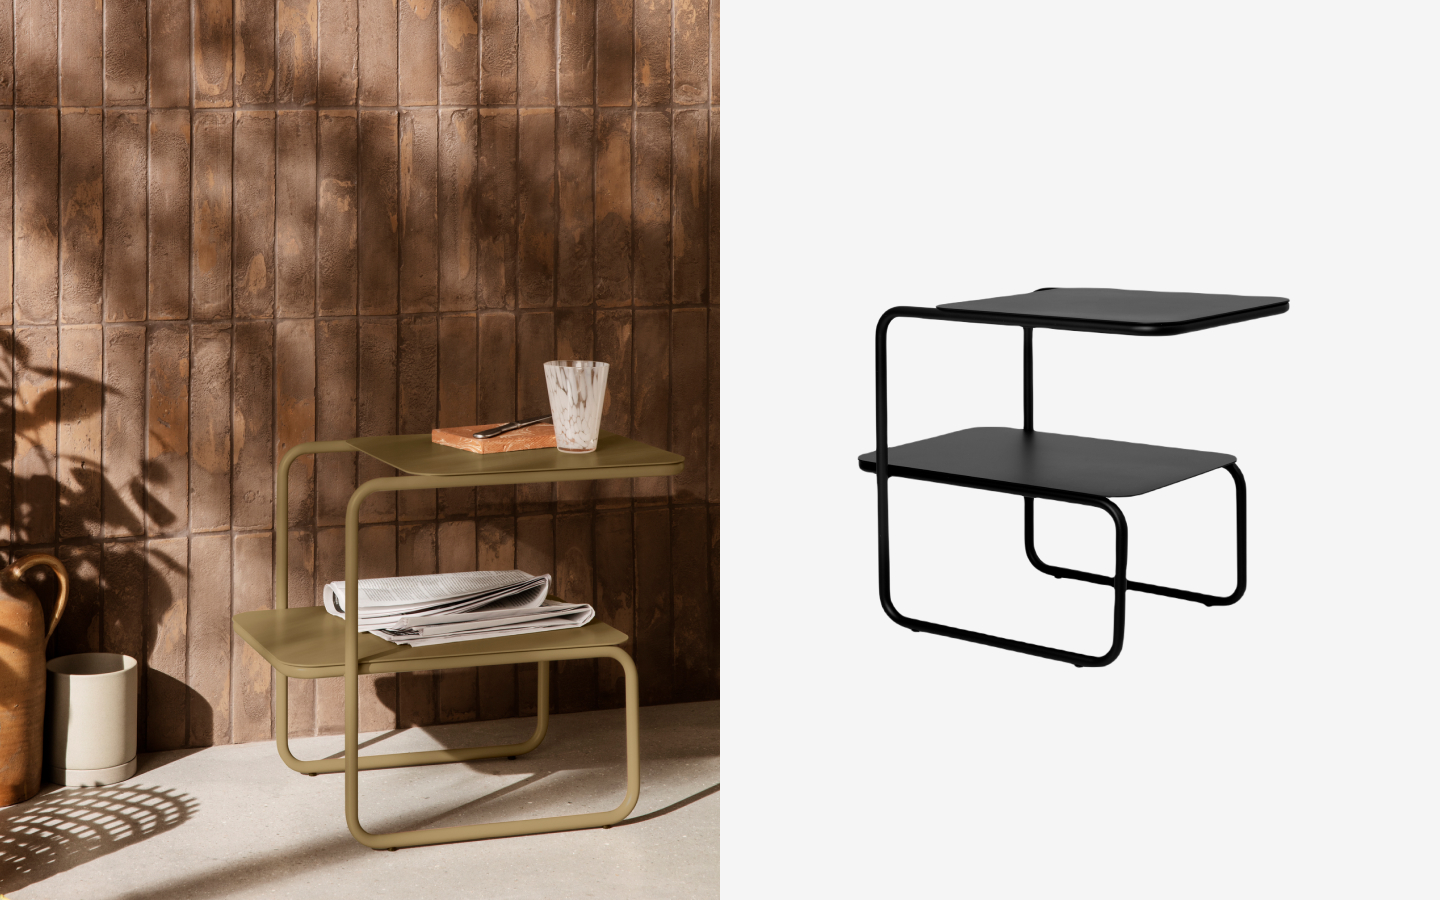 Tubular steel side table with two shelves